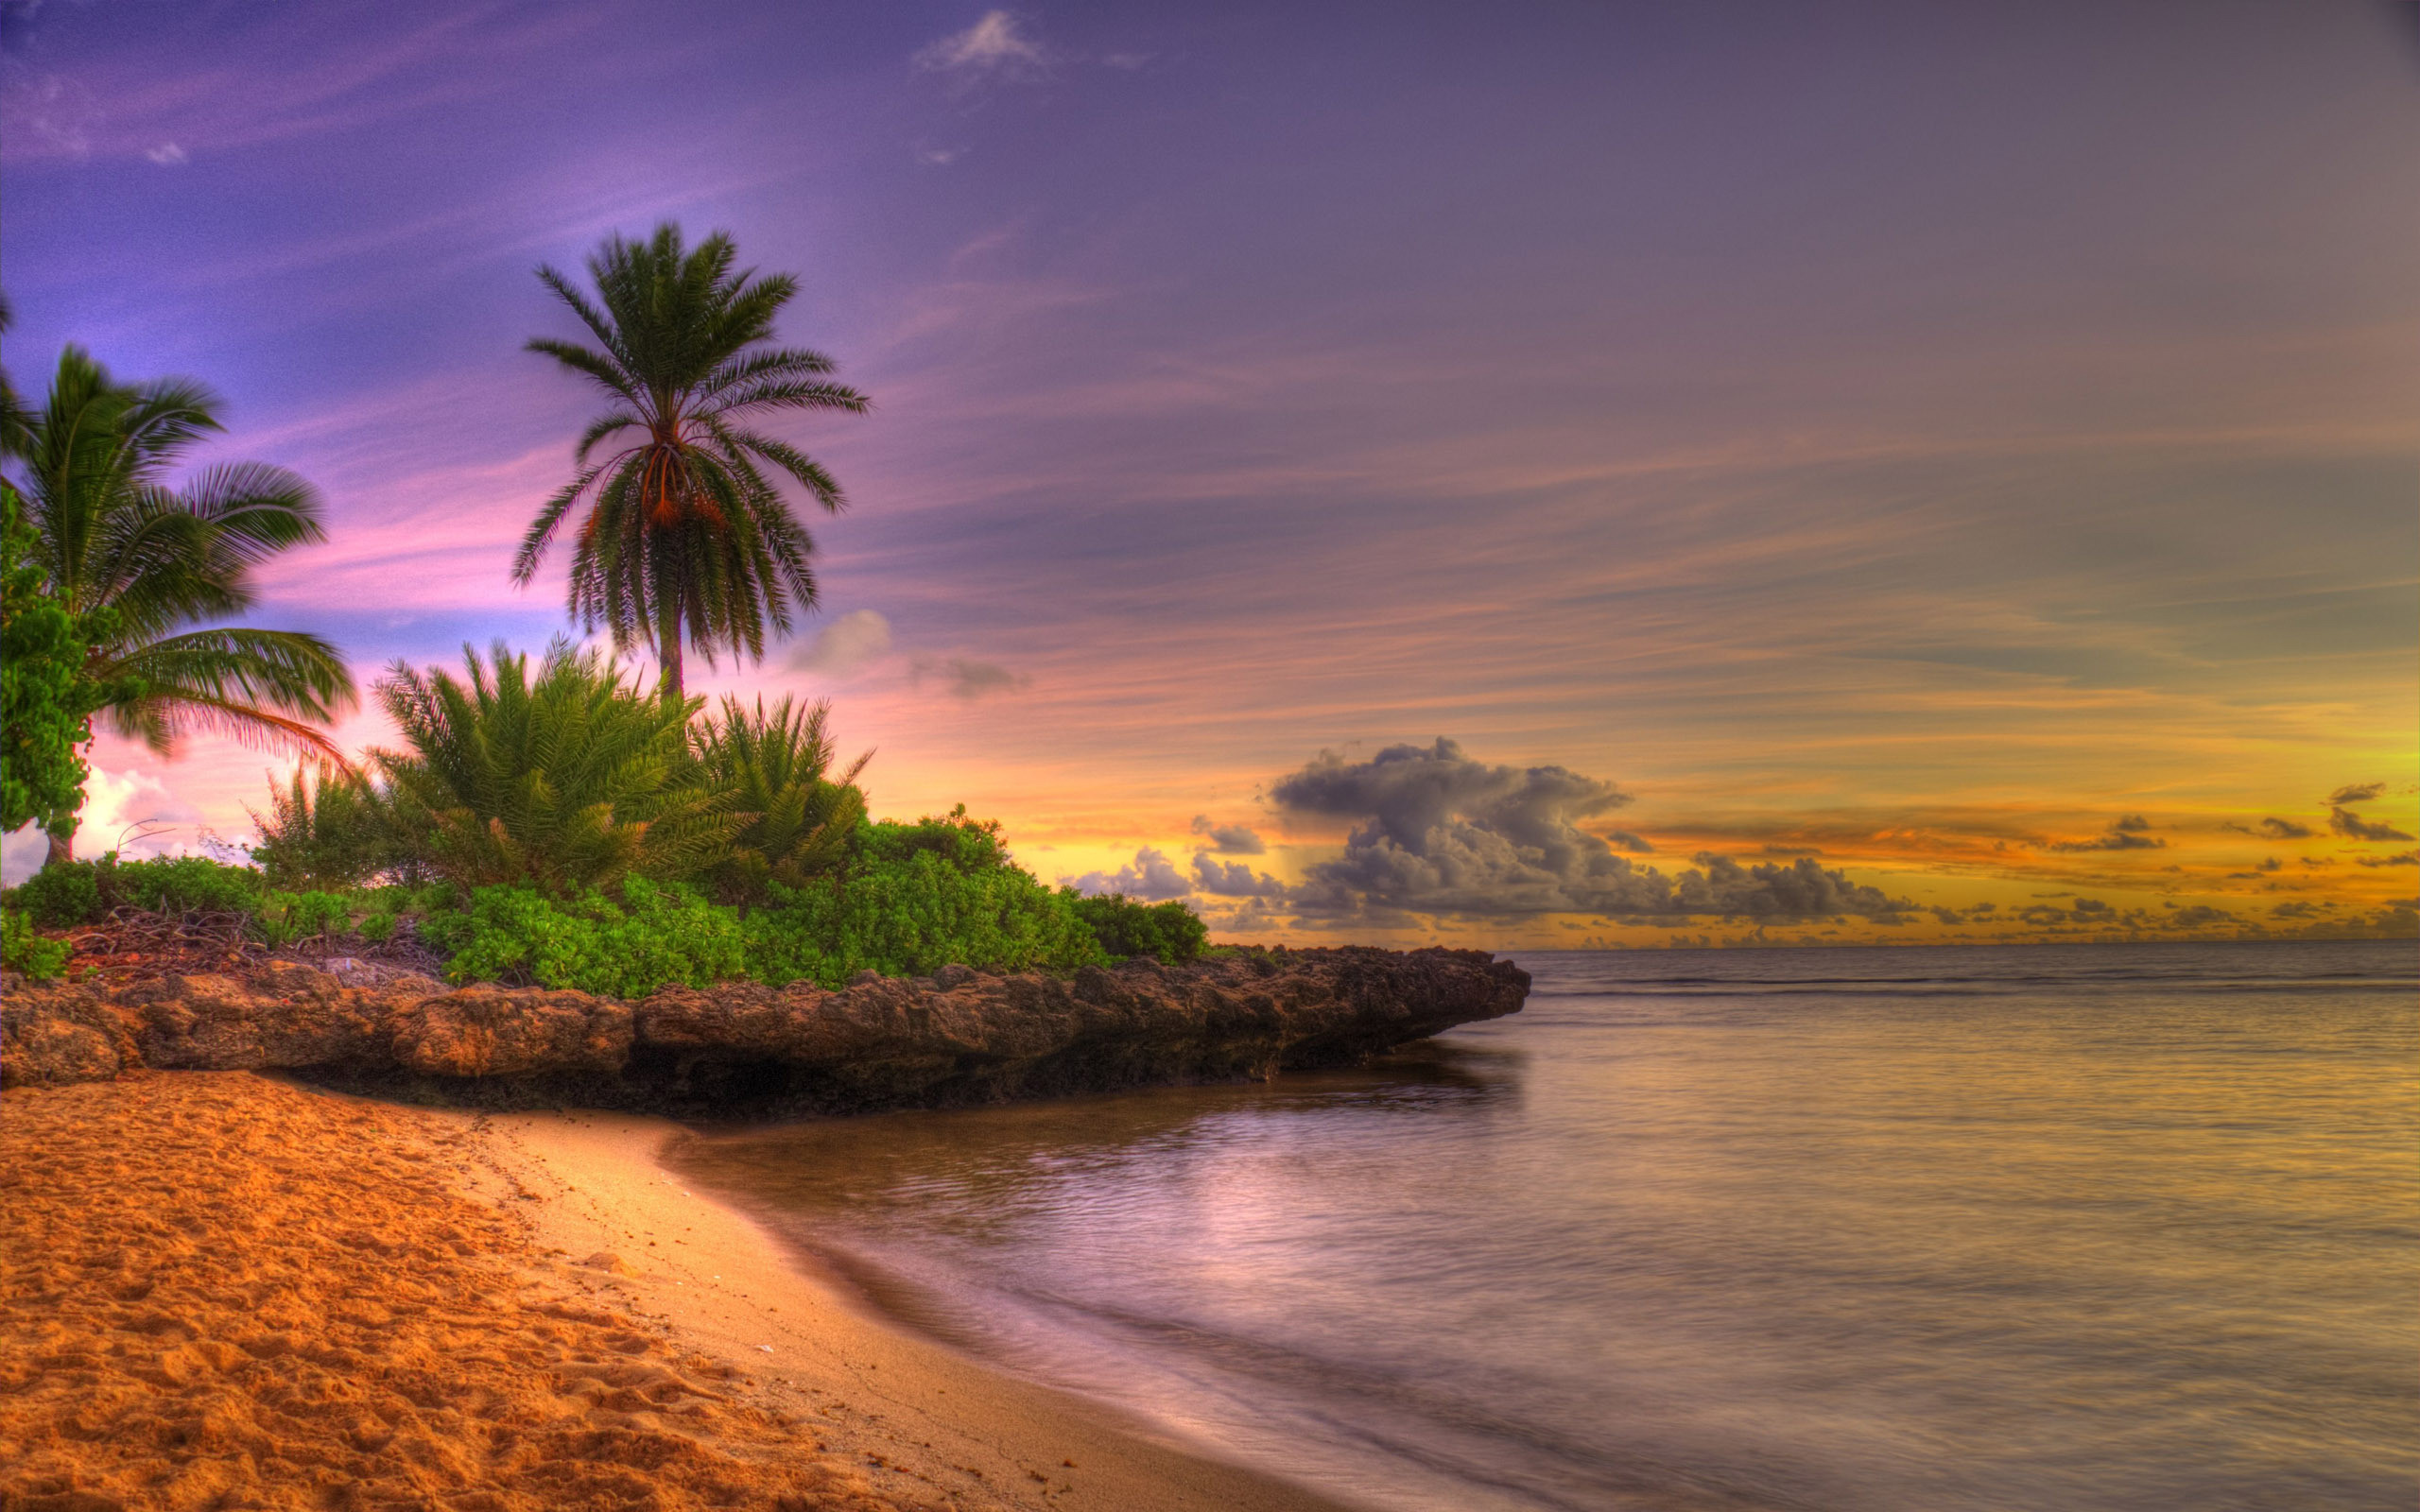 Res: 2560x1600, ... VAI-47: Tropical Island Images for Laptop ...